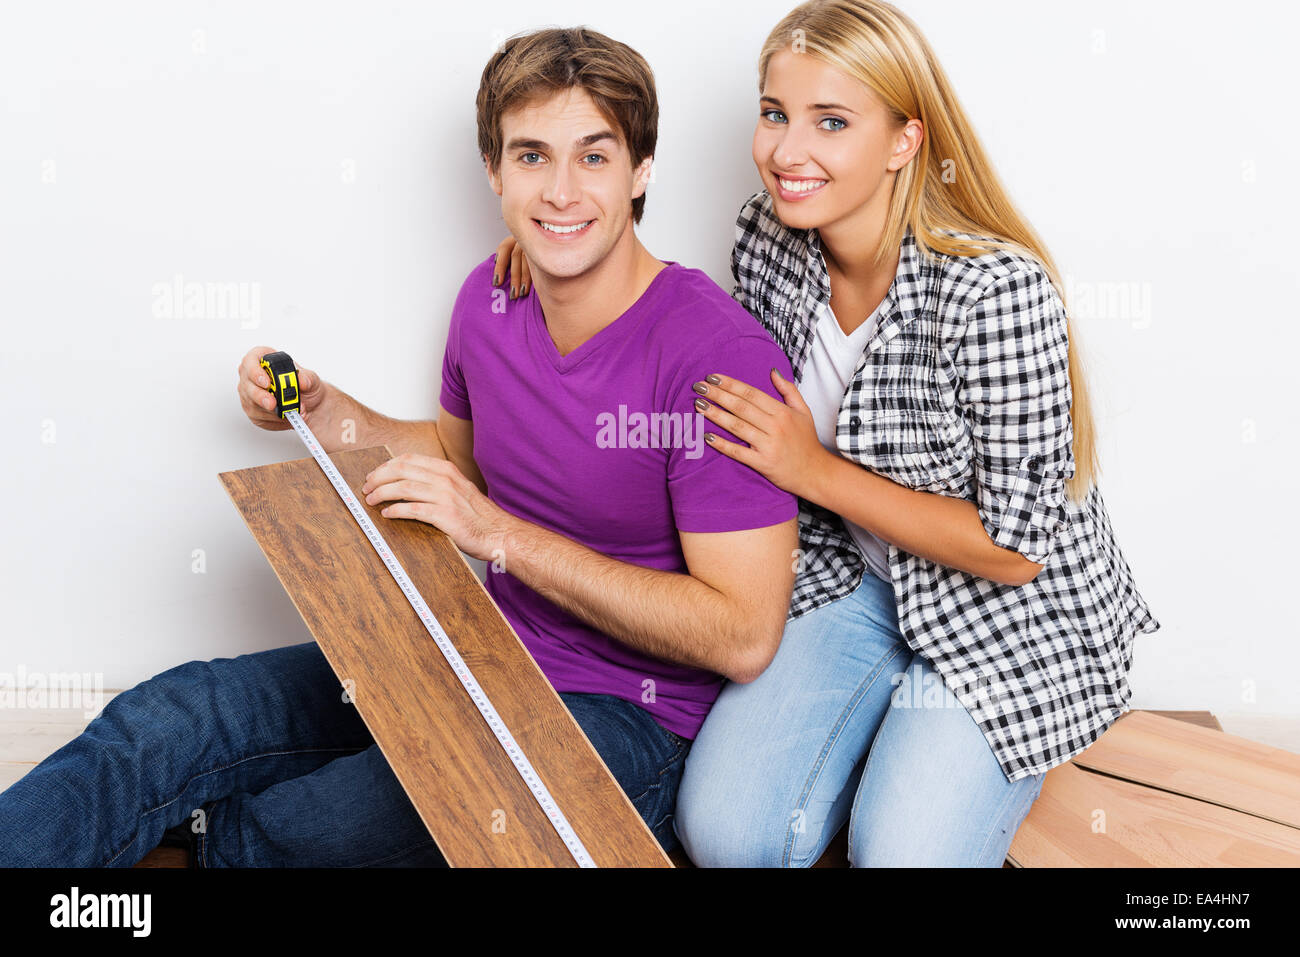 Young couple measuring woodblock - Stock Image